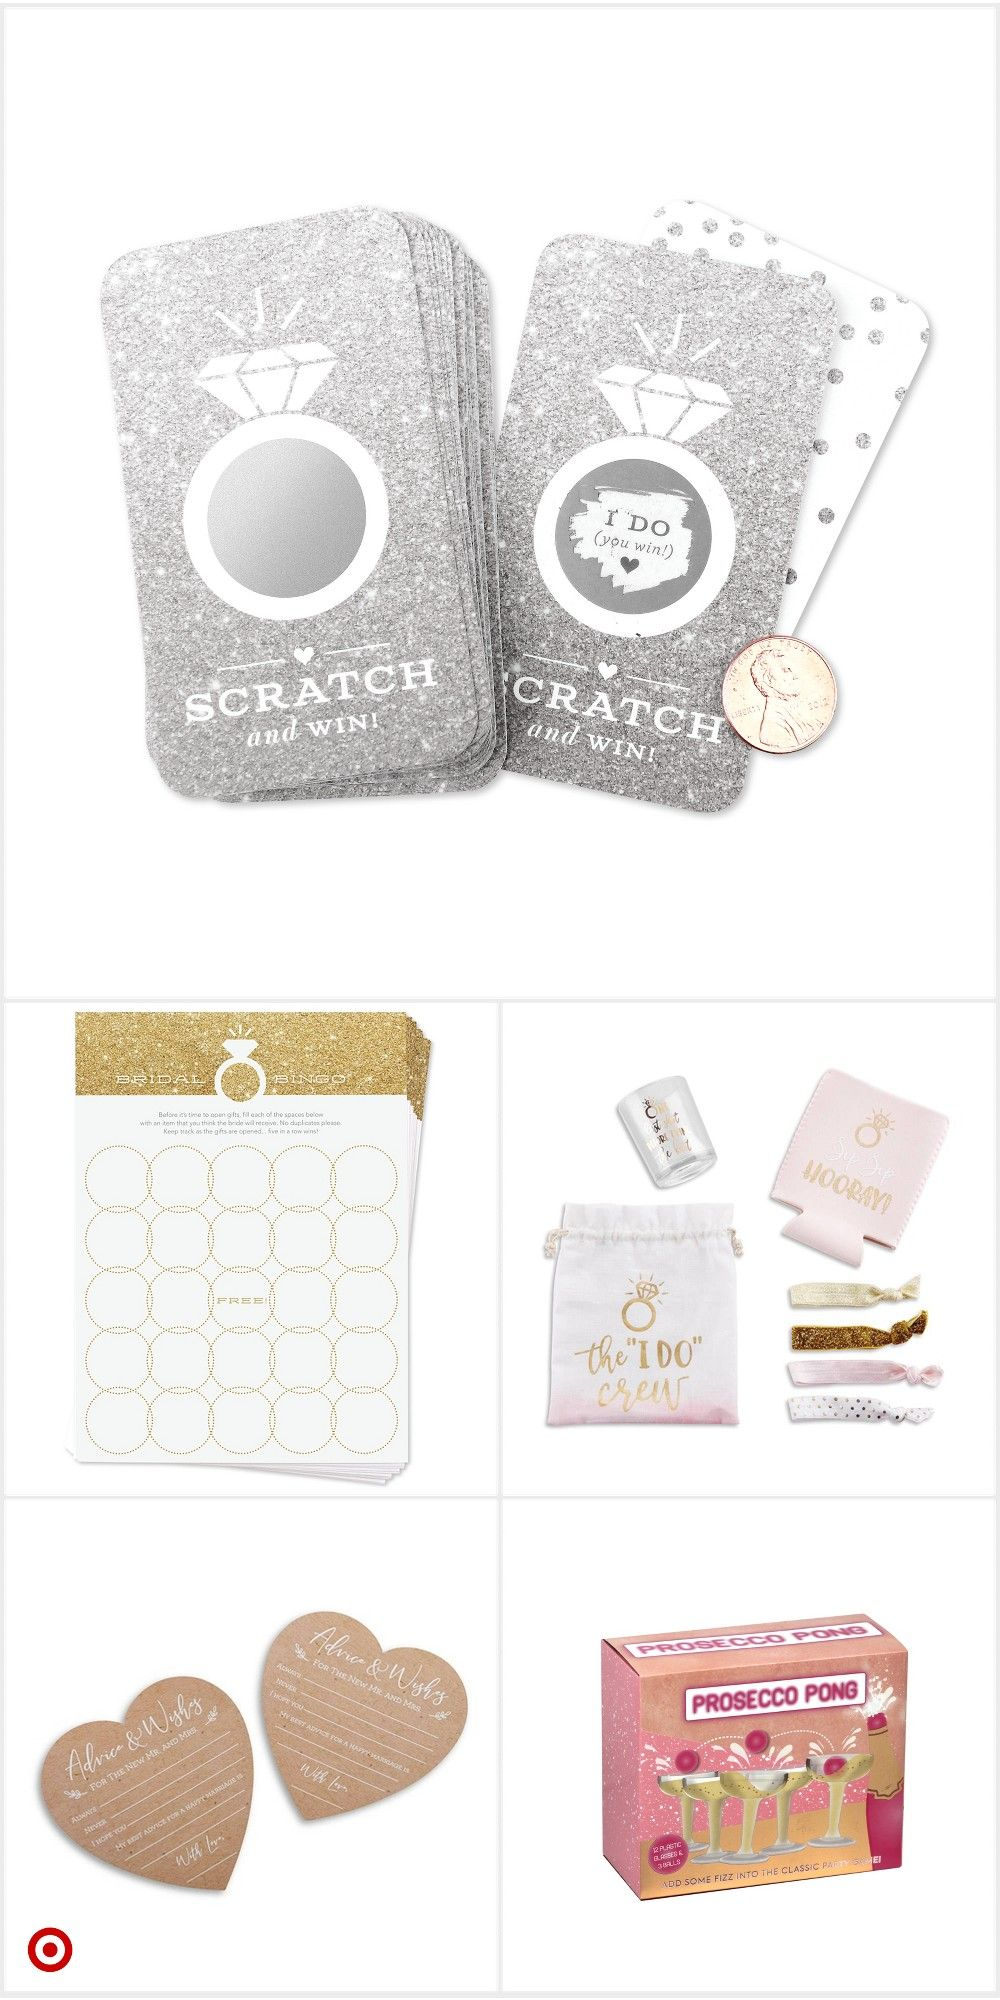 Pin By Kathy Hovland On Bridal Shower Games In 2020